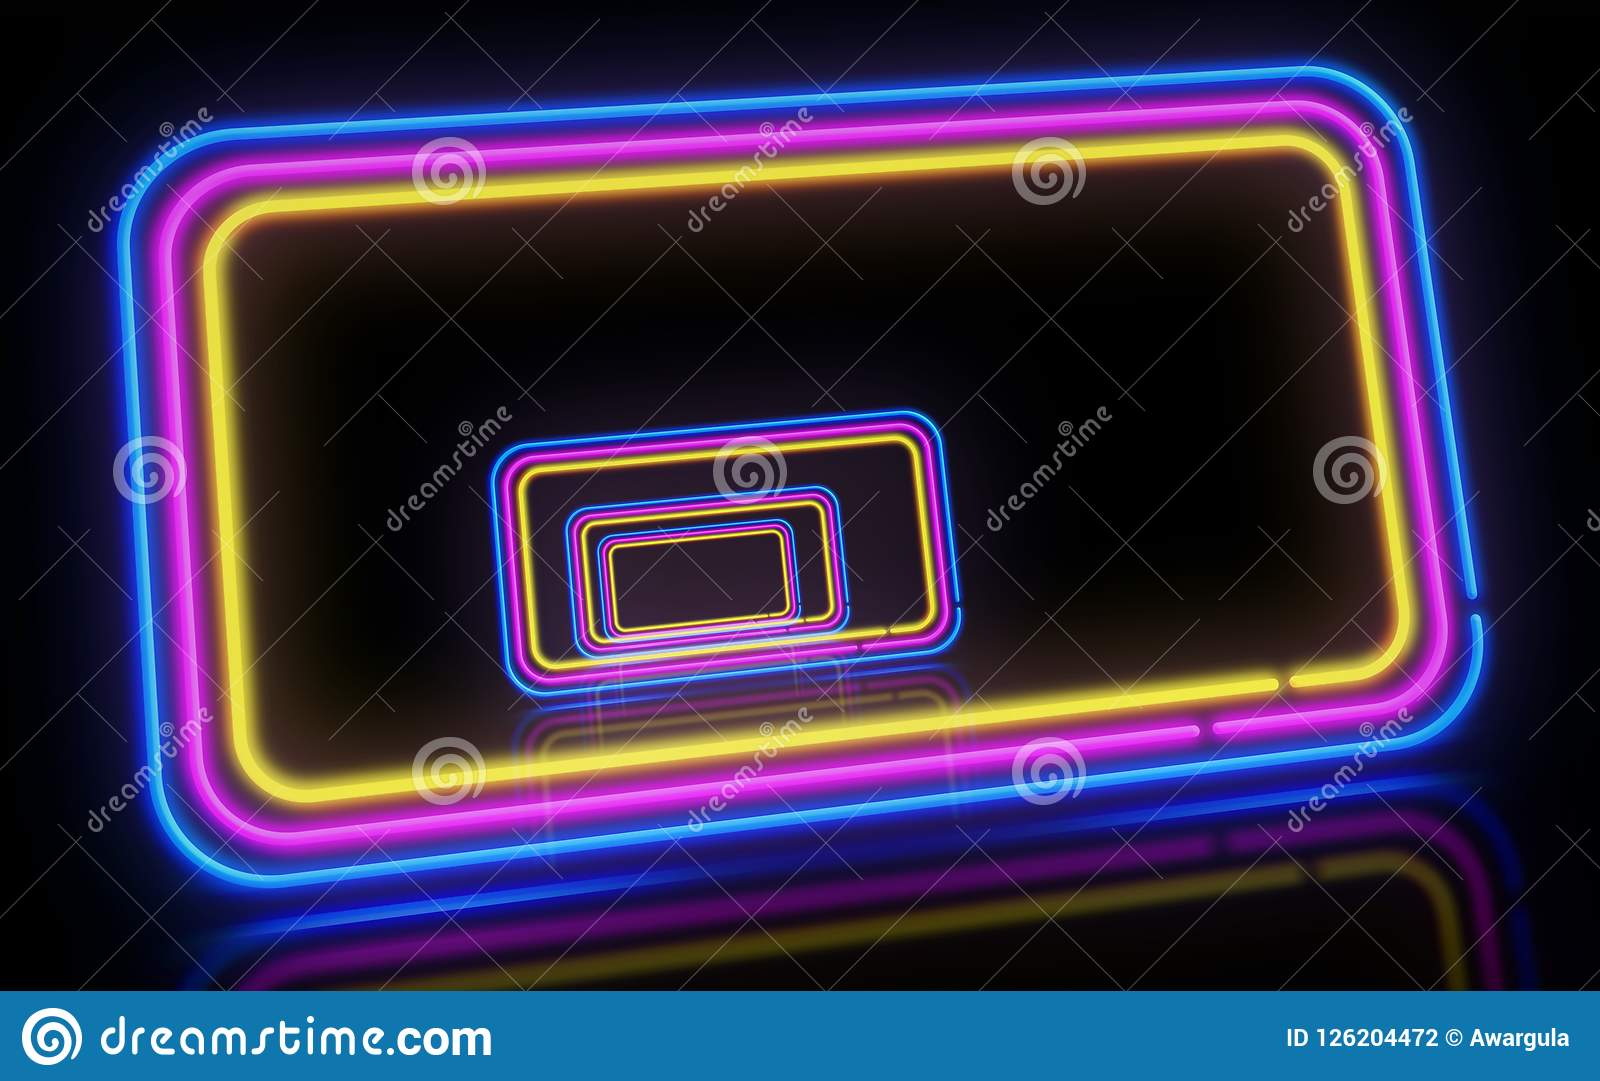 Neon background 3d illustration. Concept of light frames in retro style.